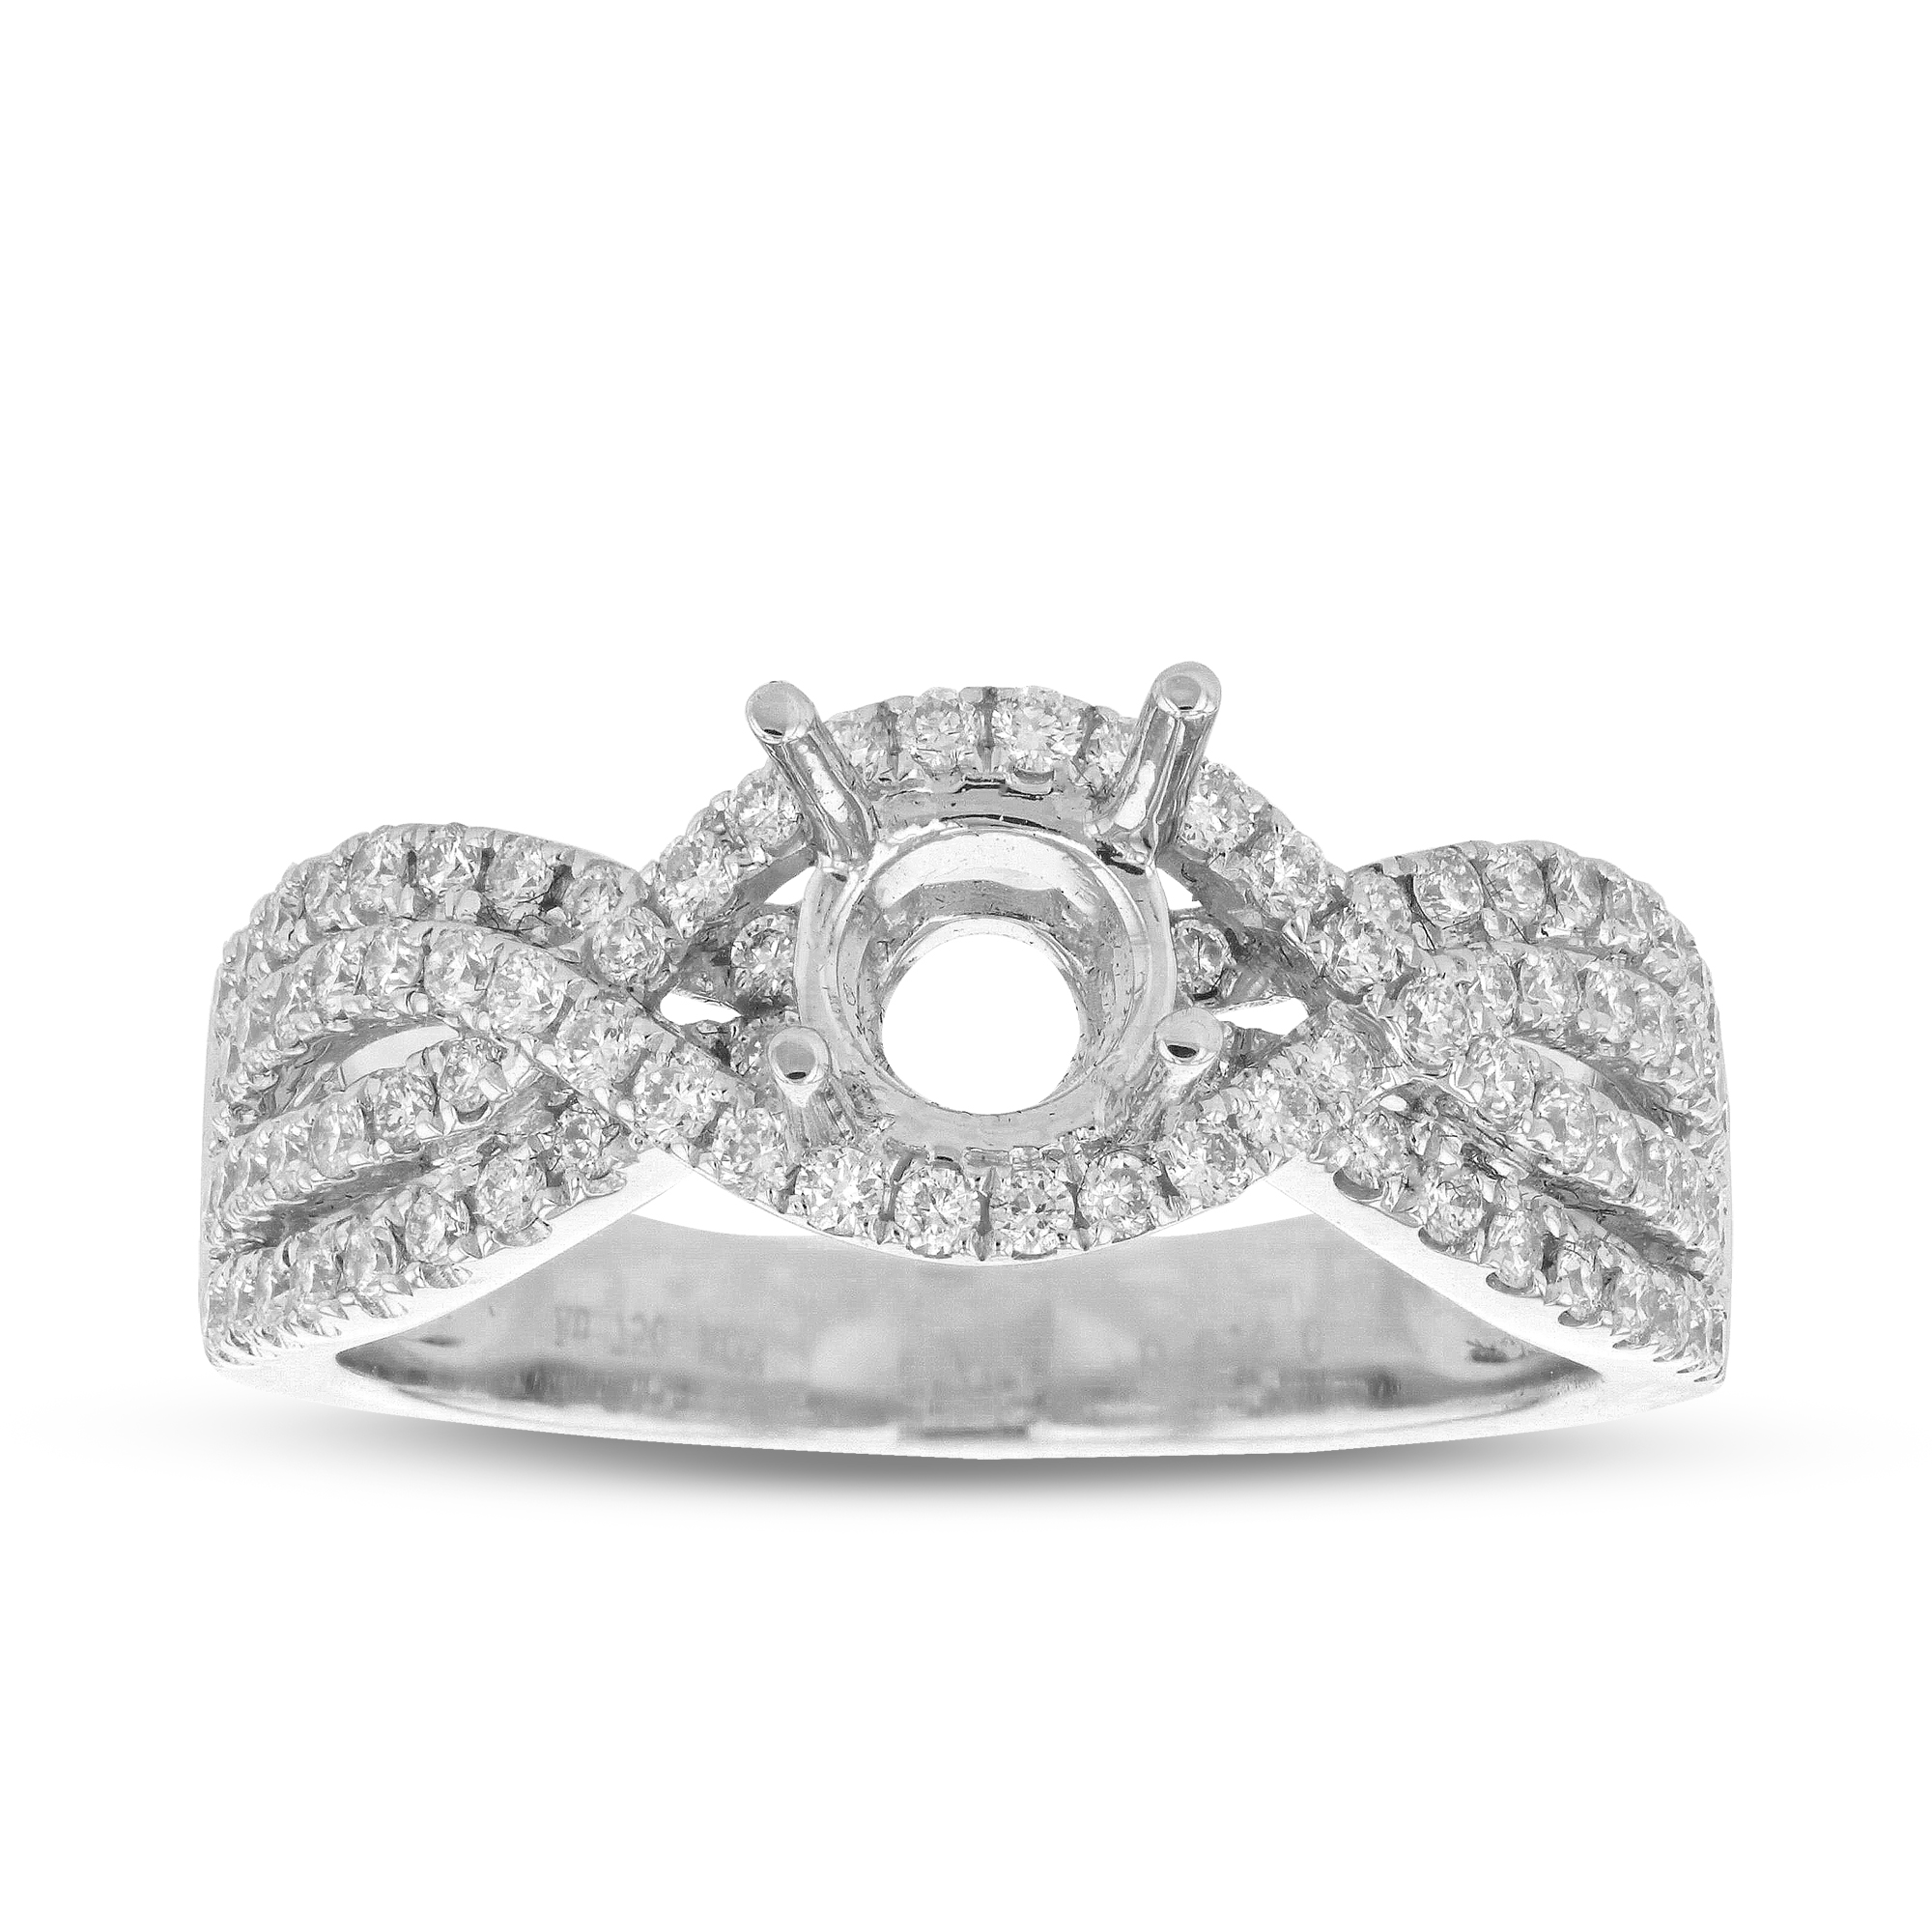 View 0.60ctw Diamond Semi Mount Engagement Ring in 18k White Gold